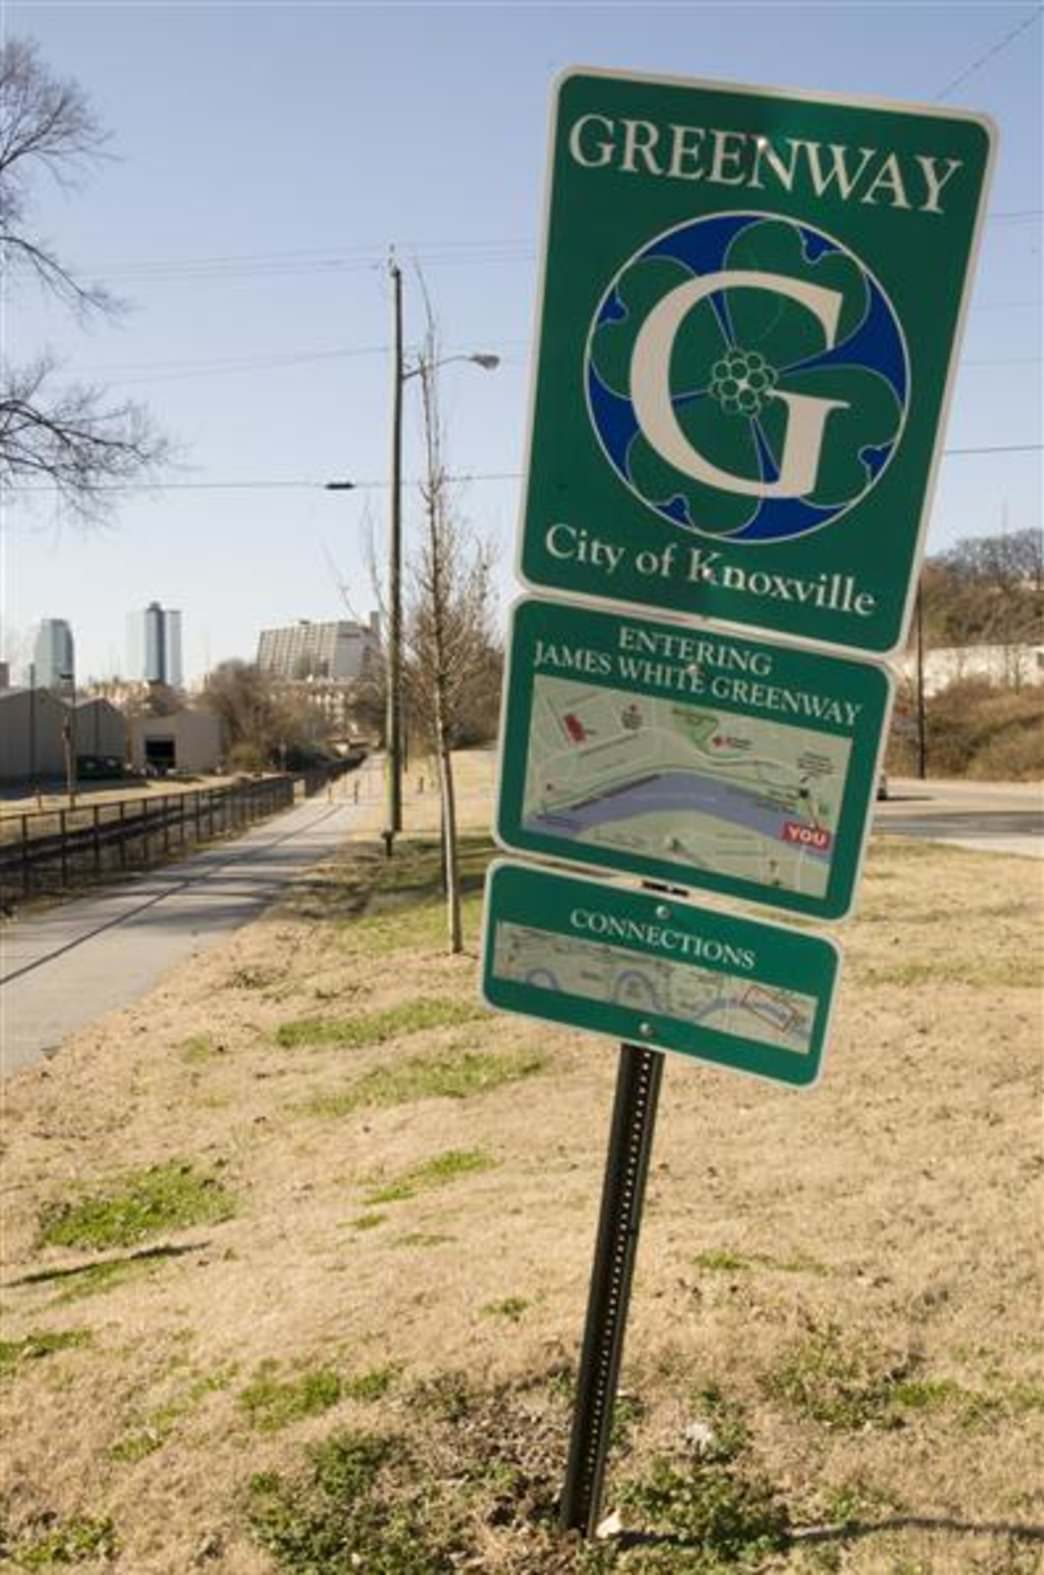 Downtown Greenway Road Running